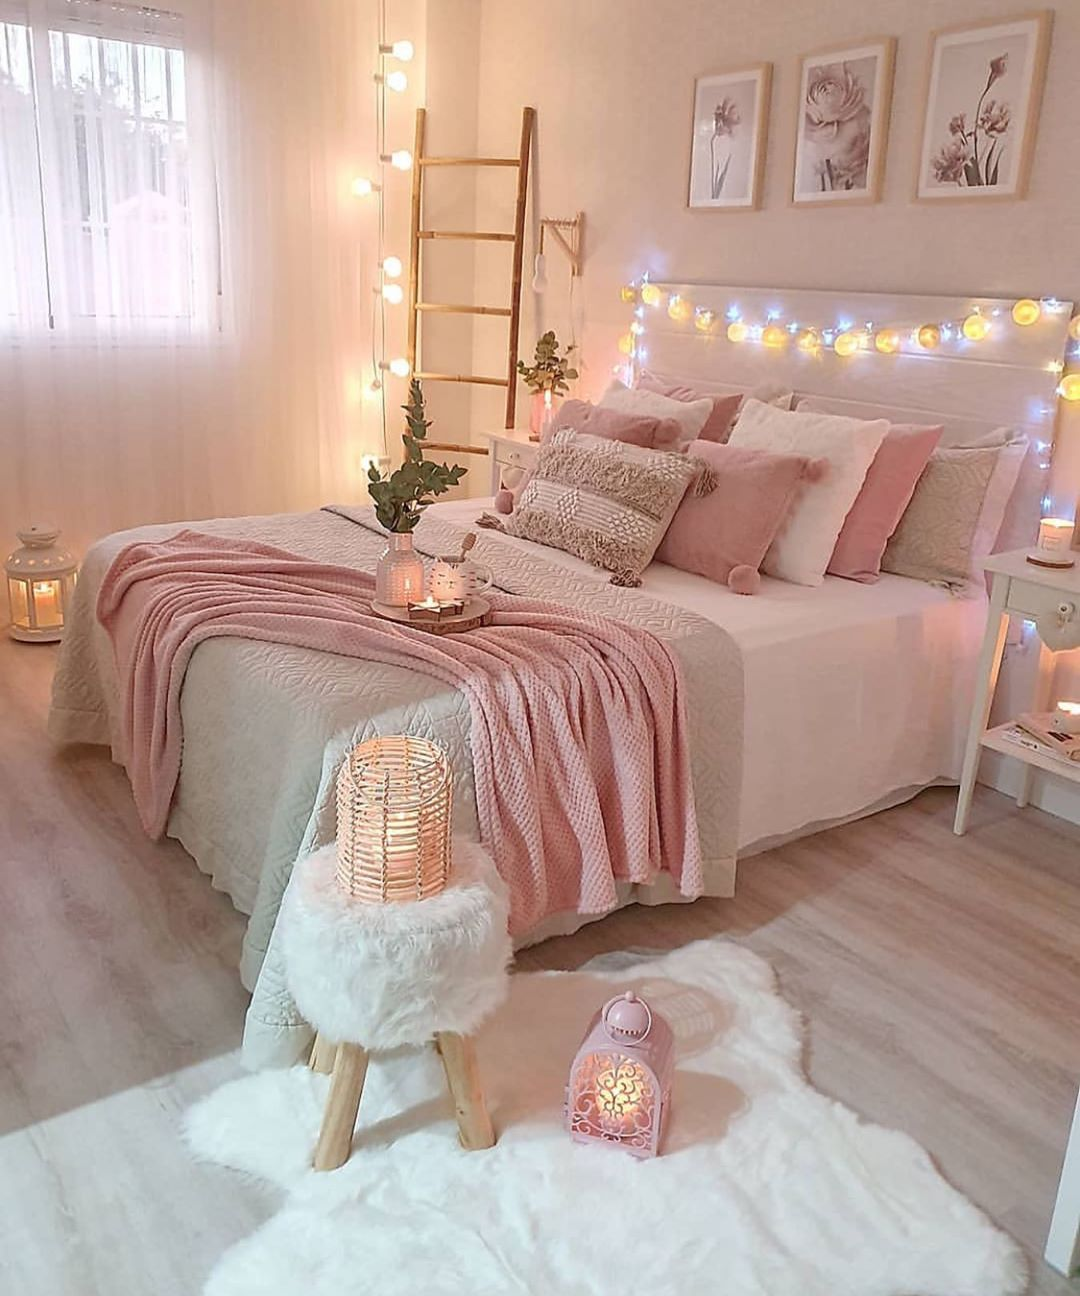 Room For Girl Interior Inspo On Instagram All The Details Double Tap If You It Credit Room Design Bedroom Bedroom Decor Cozy Room